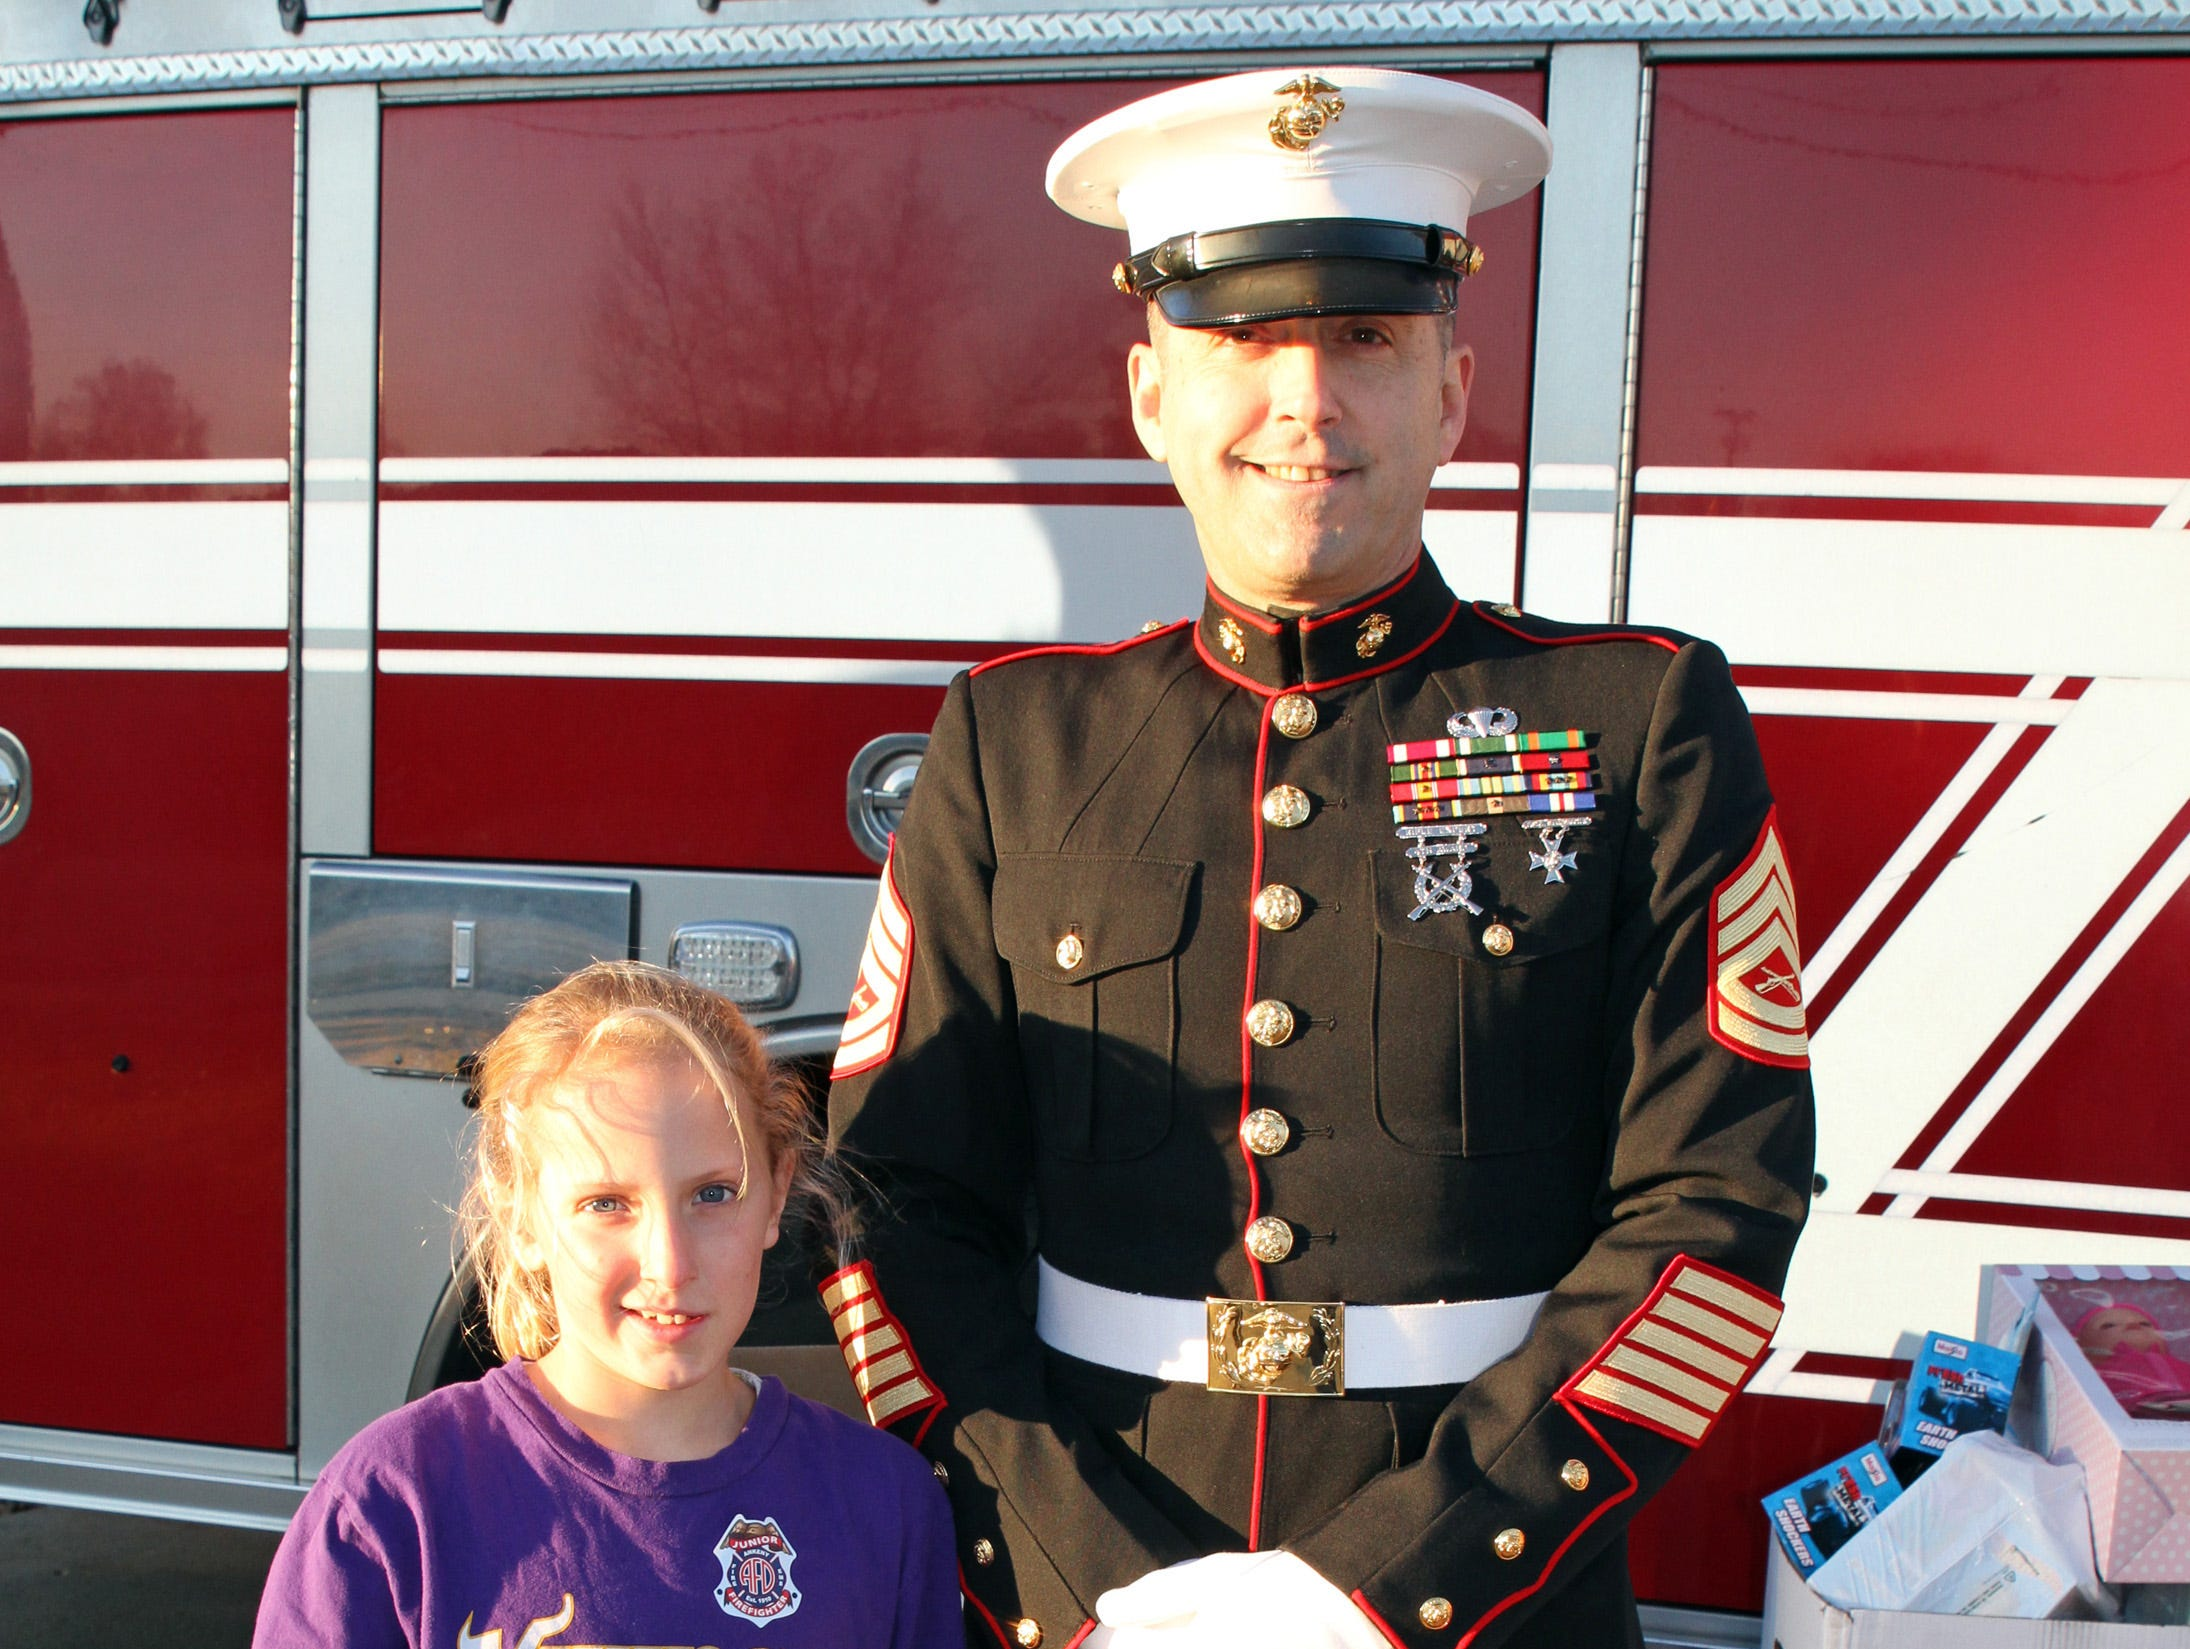 Kendra Norgaard, 10, of Ankeny helps retired Marine Gunnery Sgt. Mark Amann, current member of the Ankeny Fire Department, as gifts are dropped off at Ankeny's fill the truck day during the U.S. Marine Corps Toys for Tots campaign at the Ankeny Fire Station Headquarters on Sunday, Dec. 16, 2018.